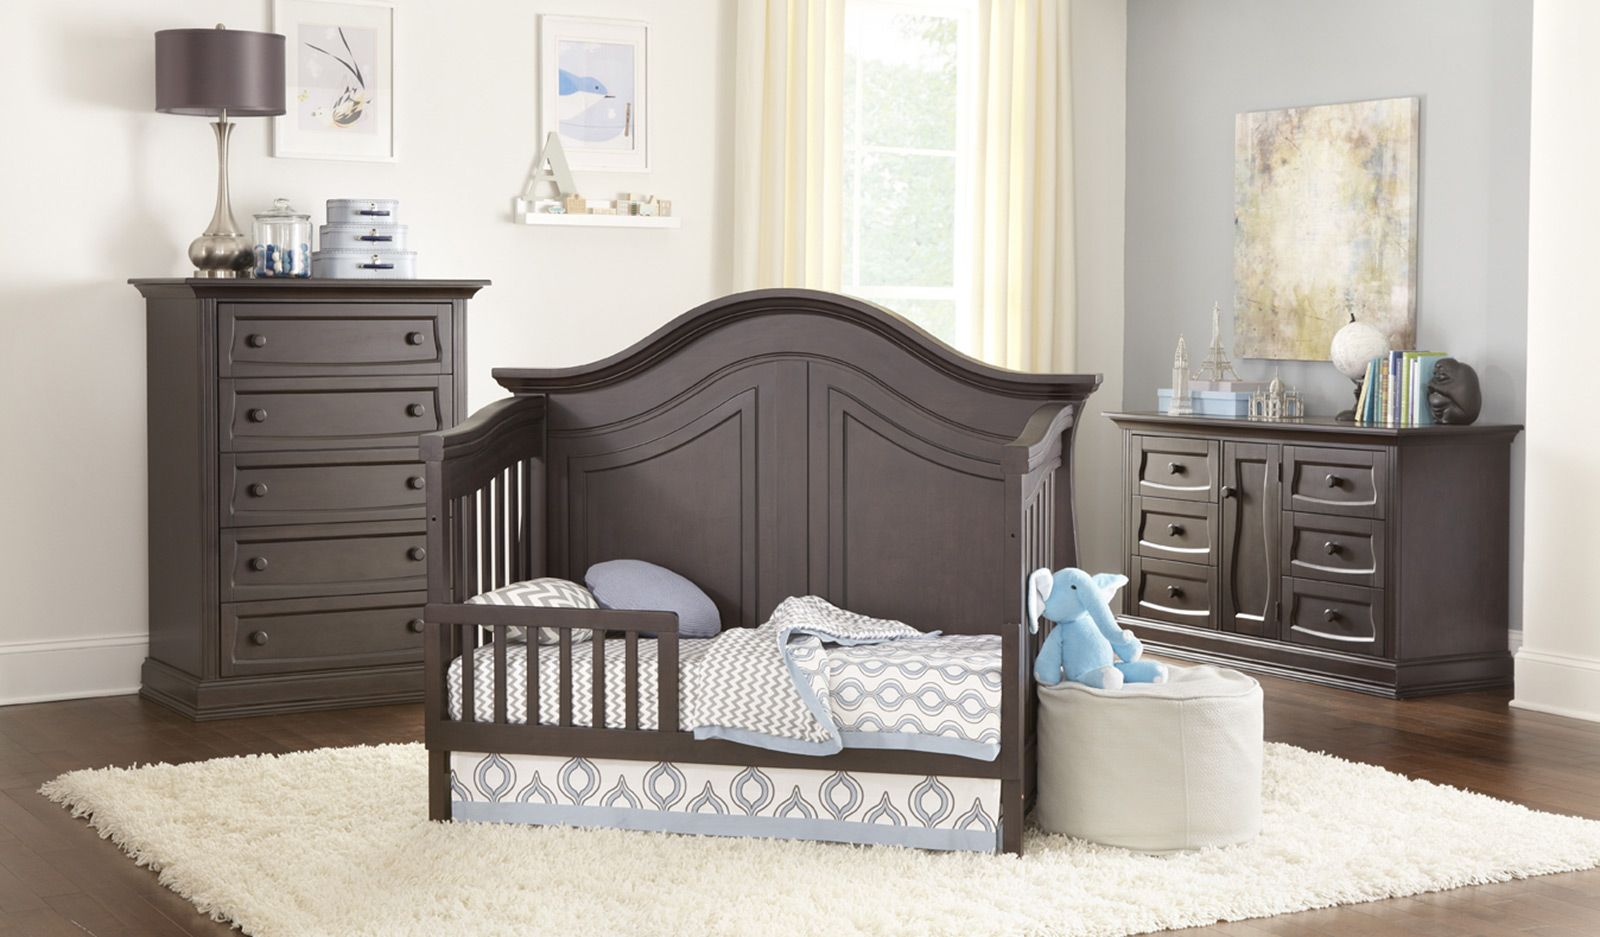 us toys baby to swish wooden furniture for bedding nursery cool dk cribs babies r crib small then picib convertible